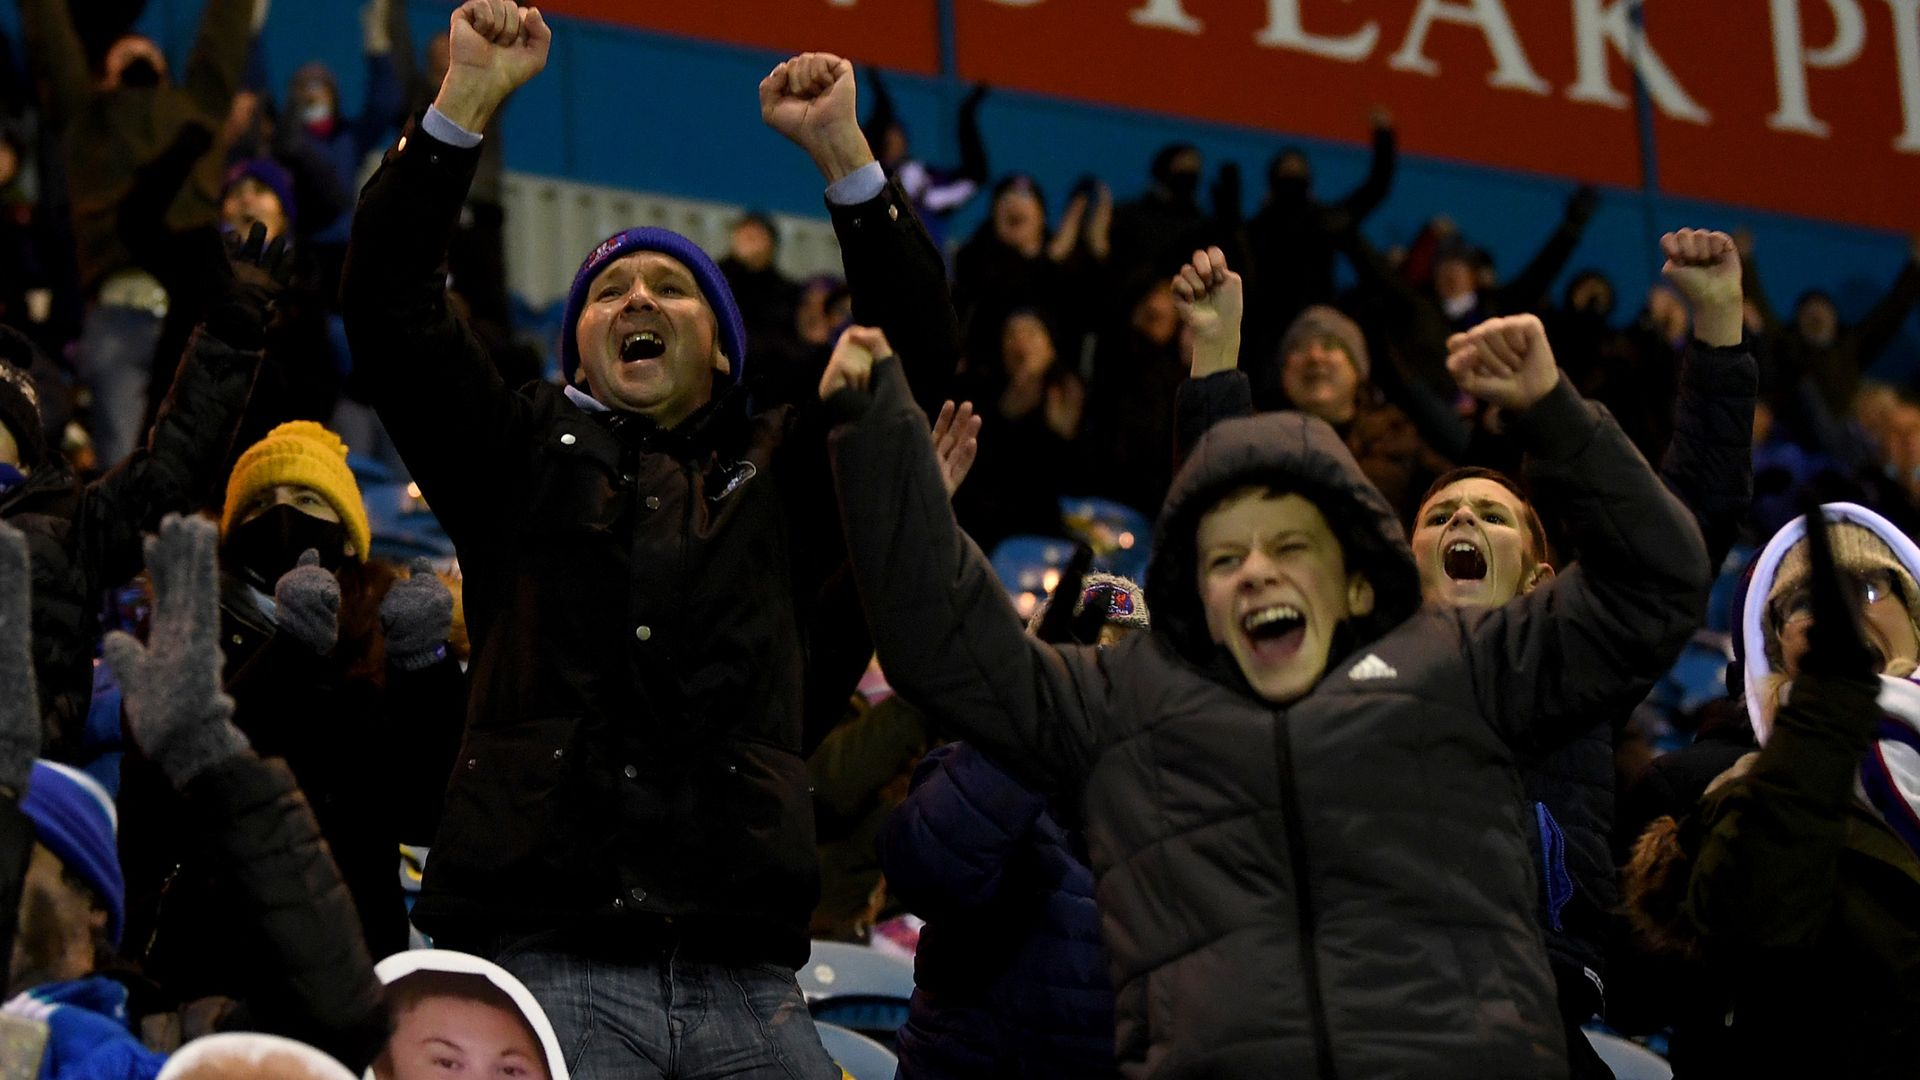 Fans return to EFL games for first time in 266 days